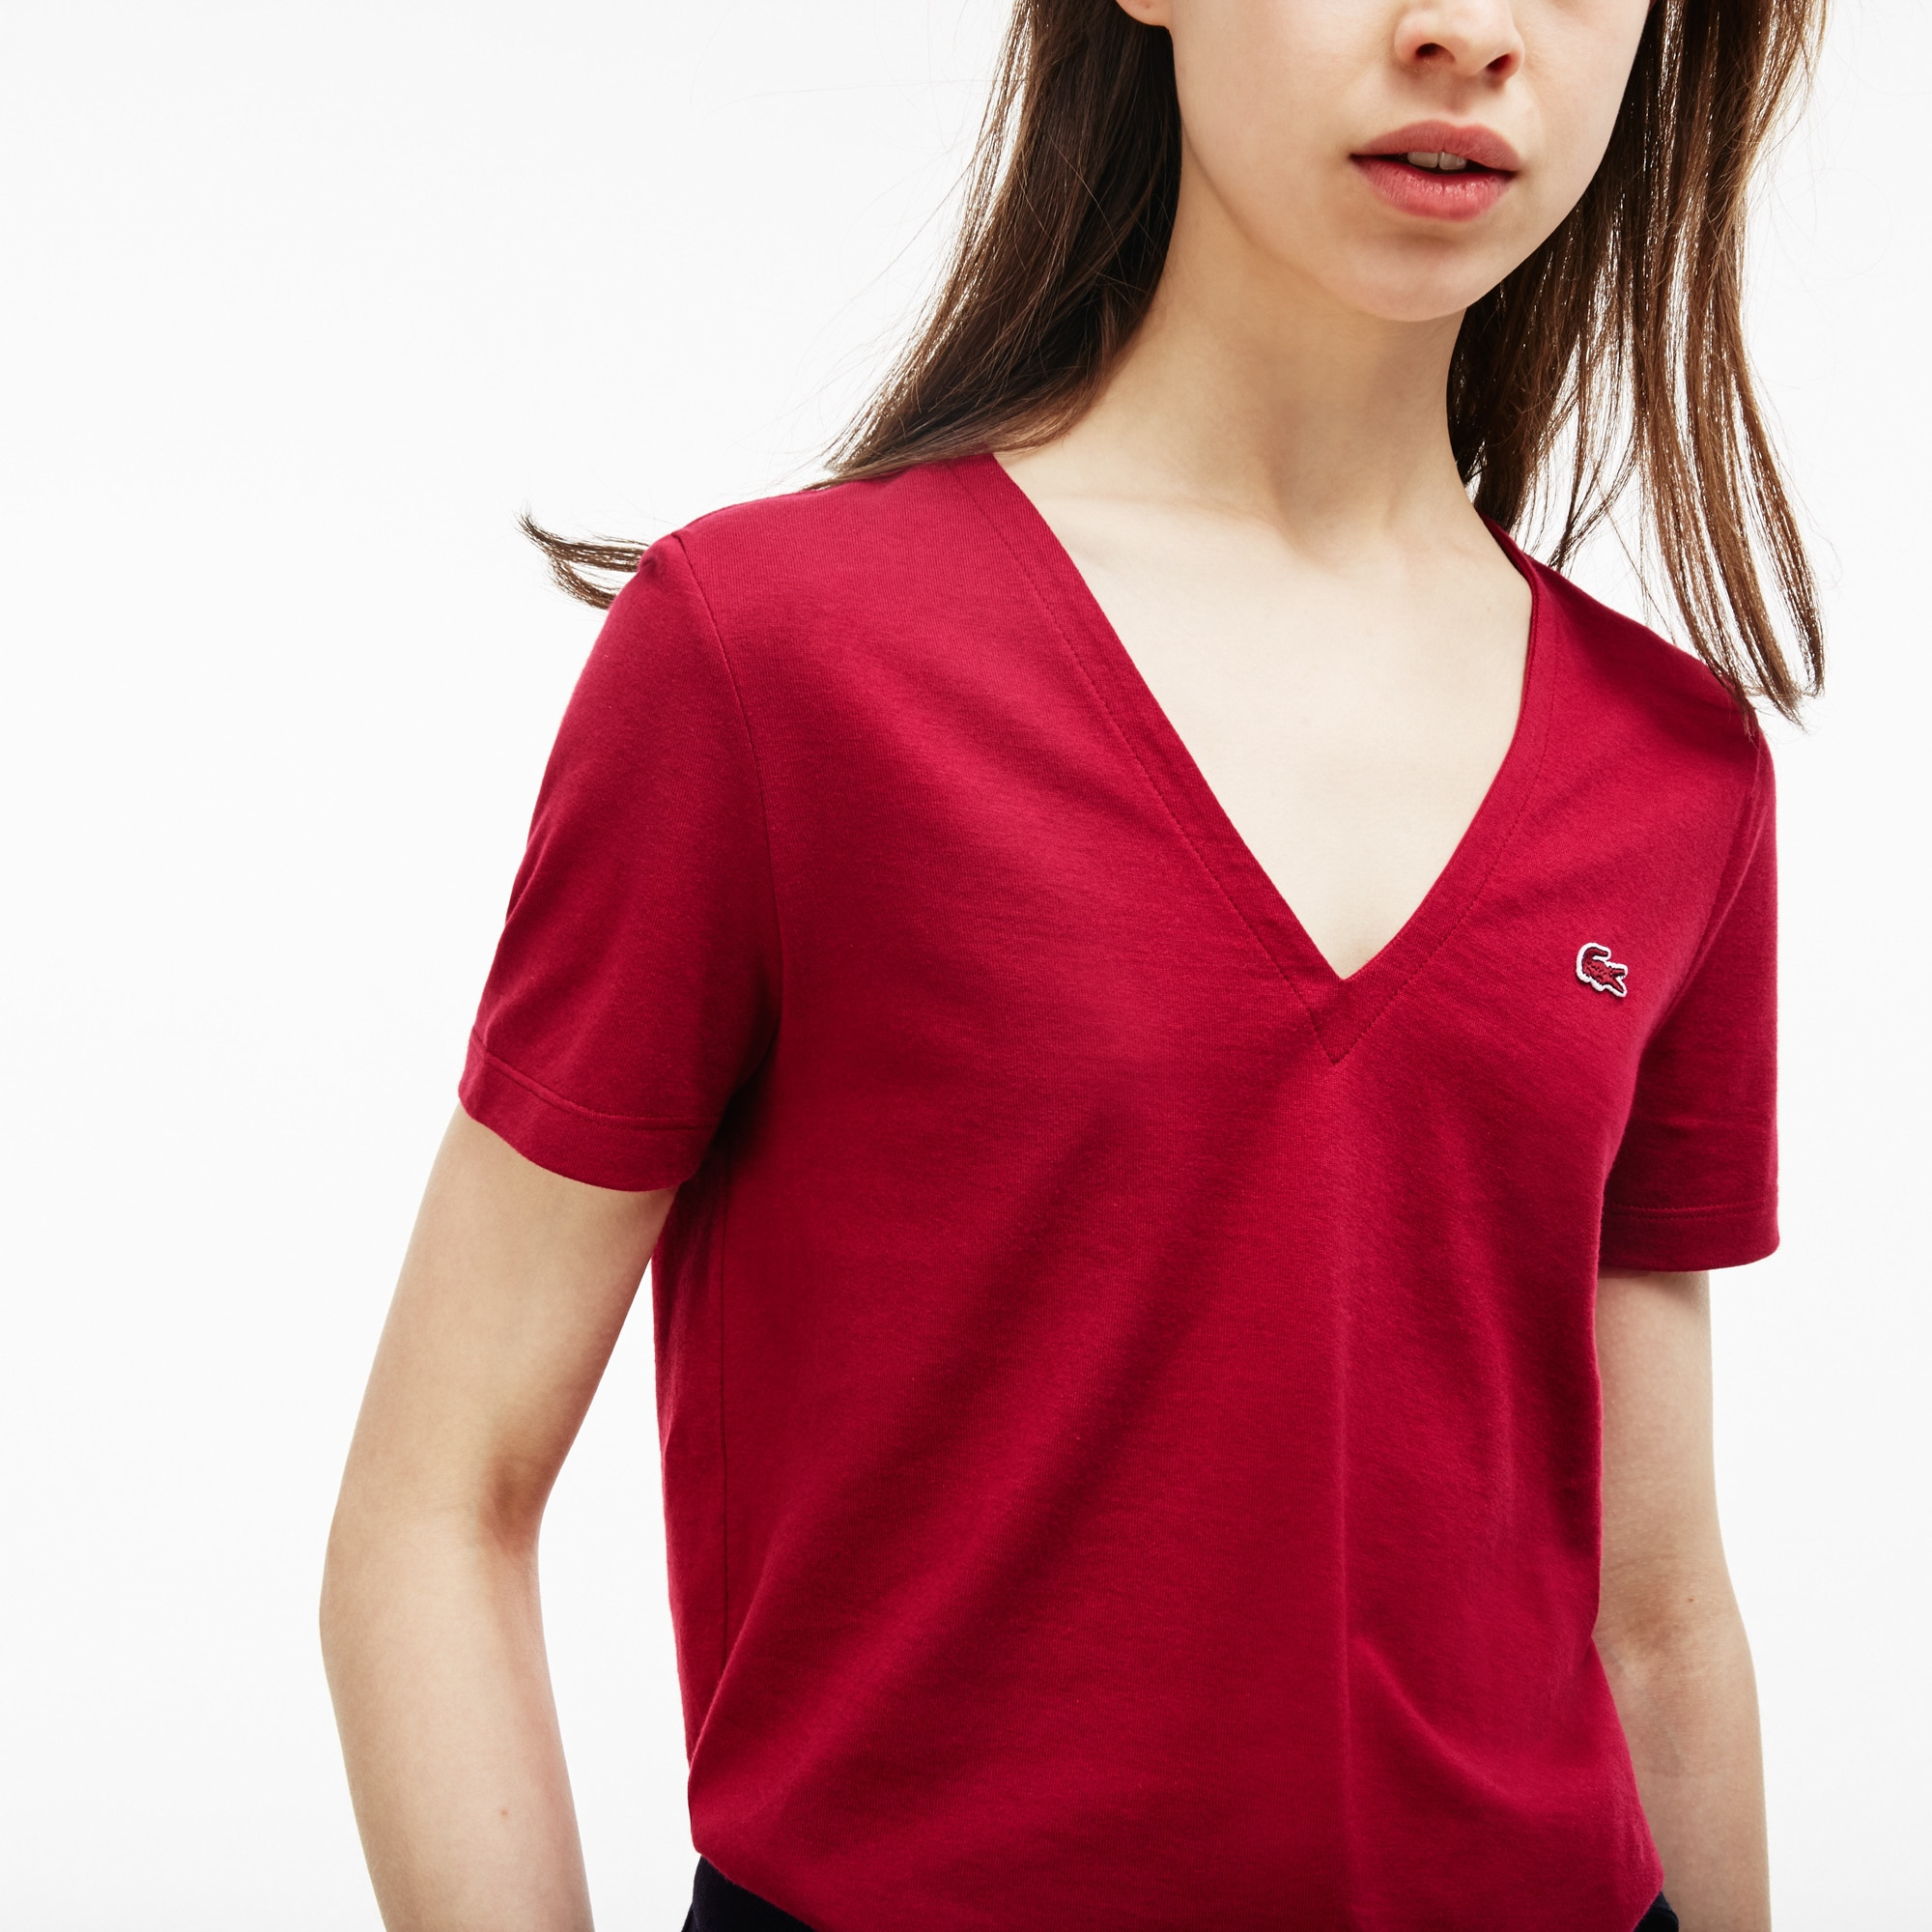 Women's Slim Fit V-Neck Cotton Jersey T-shirt